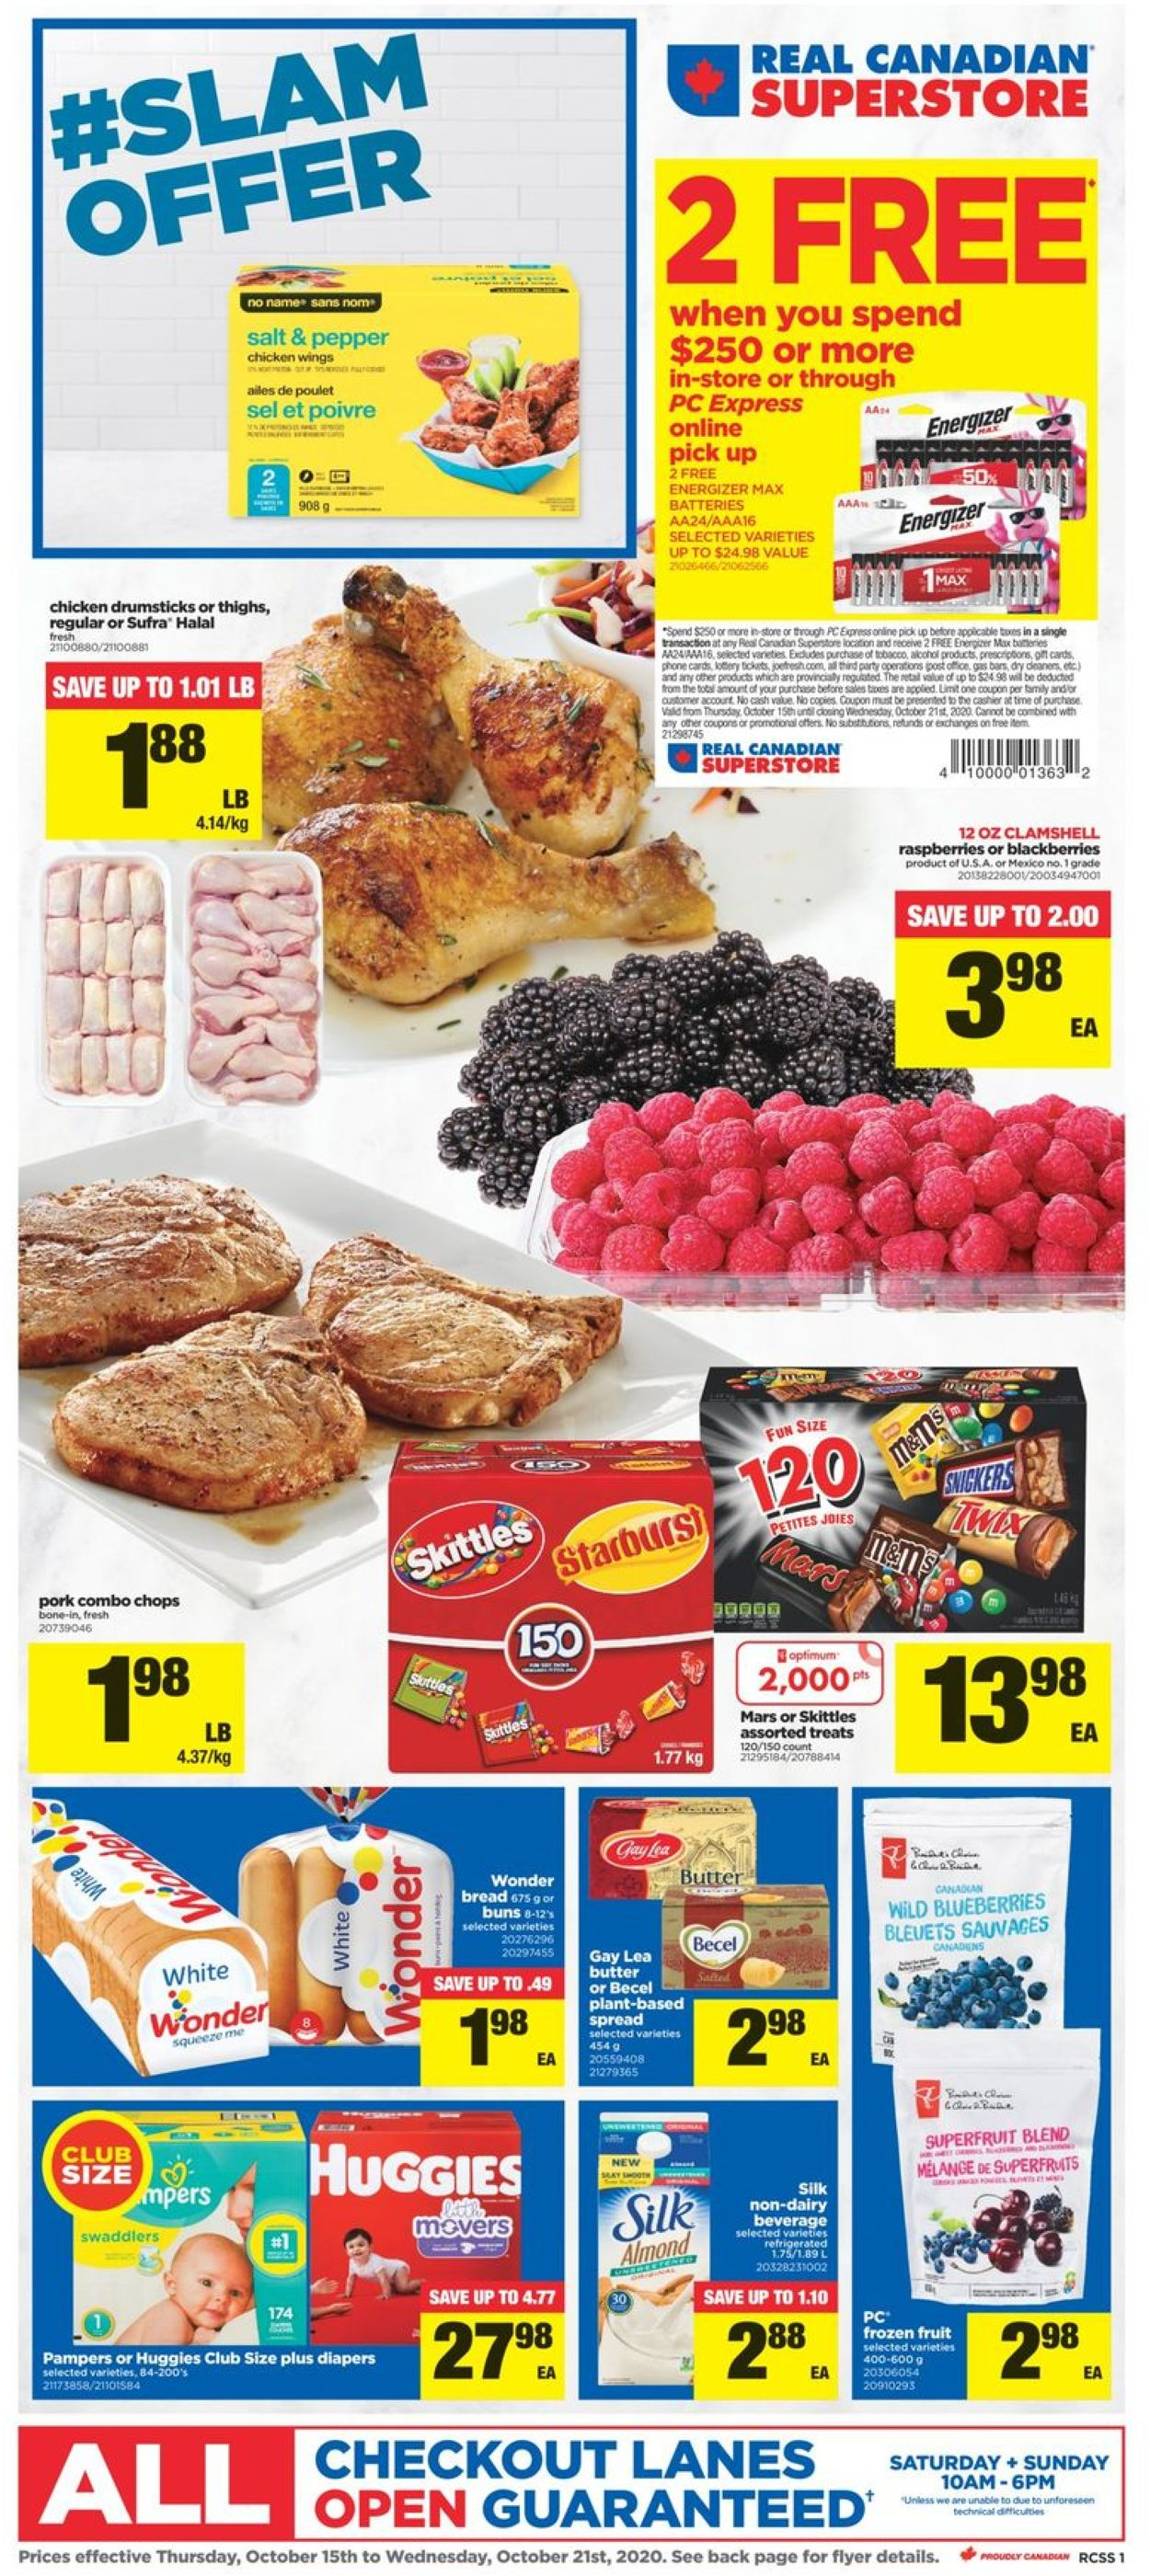 Real Canadian Superstore Flyer - 10/15-10/21/2020